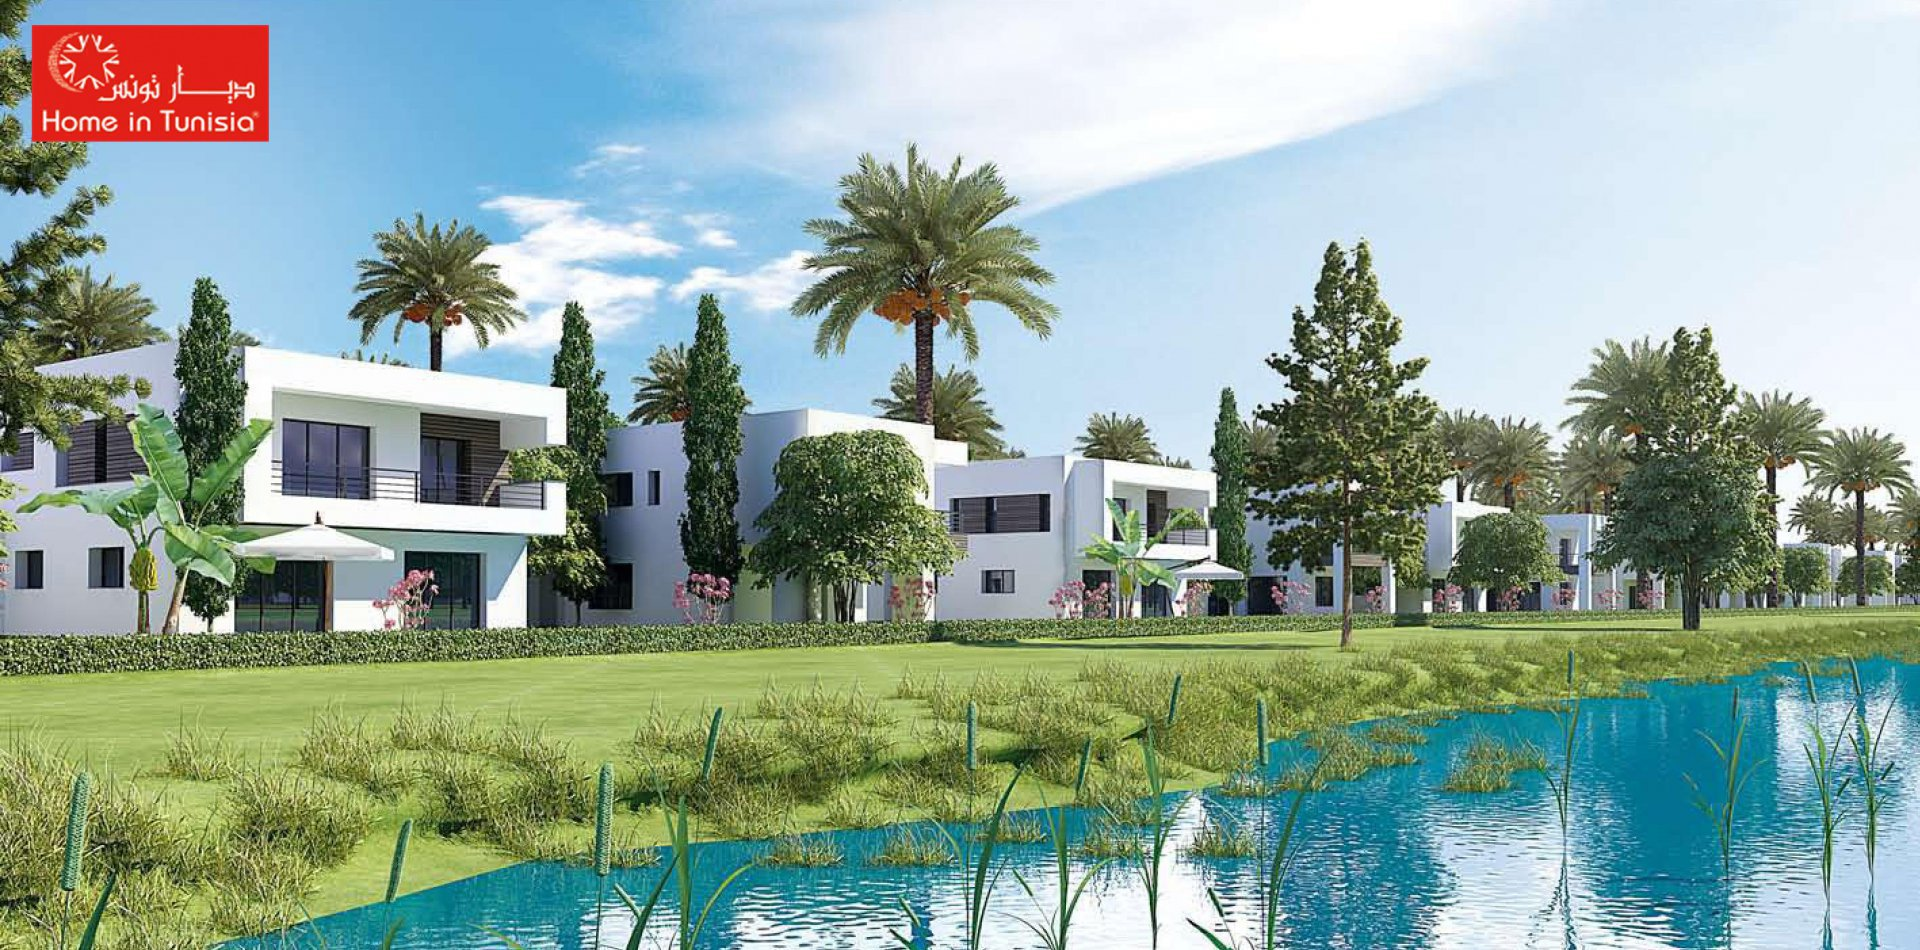 Villa isolated new golf of 278.77 m2 with 4 rooms terrace garden swimming pool garage